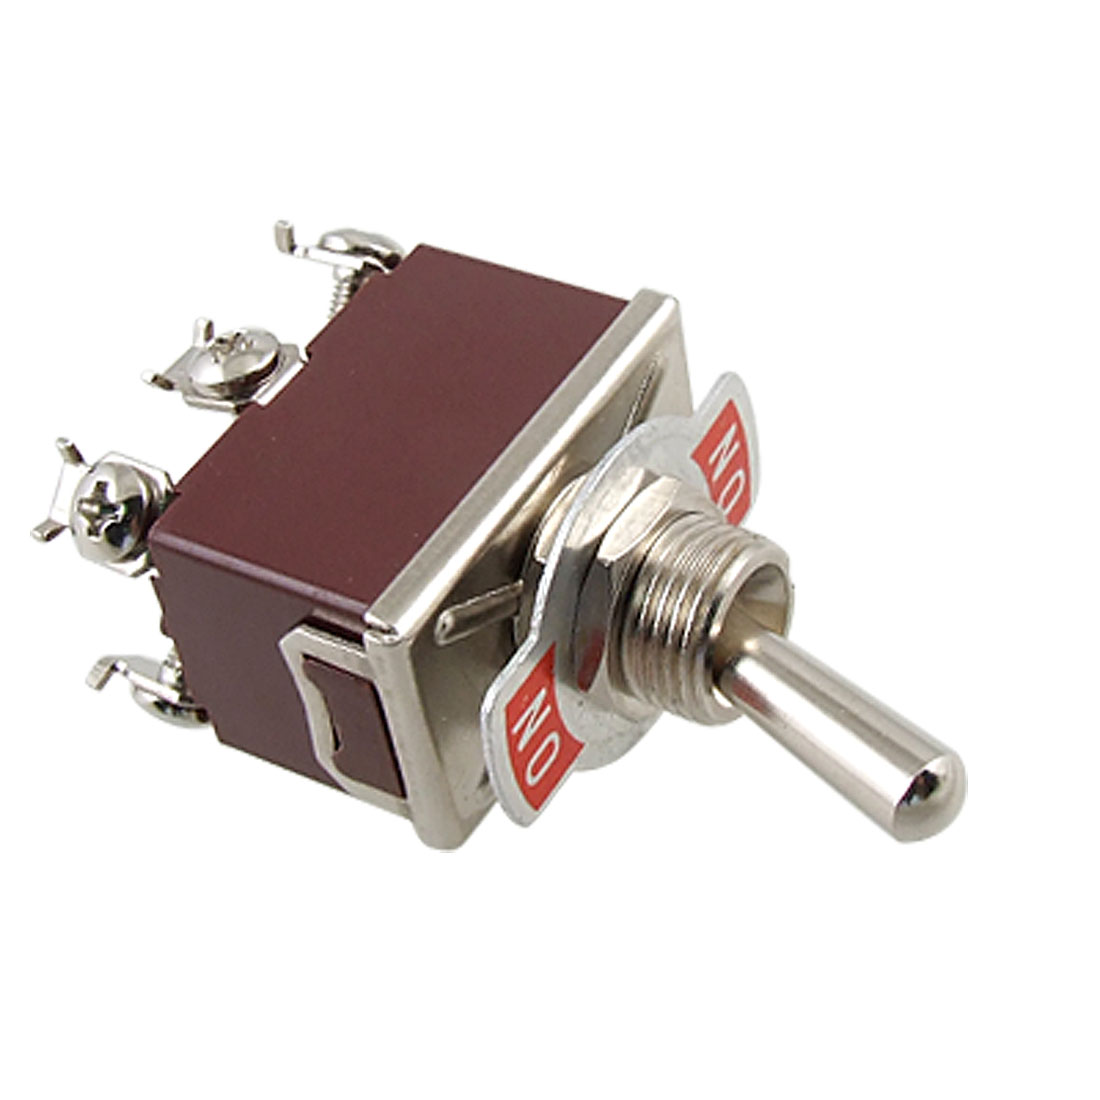 AC 250V 15A Metal Handle On/On DPDT Screw Terminals Toggle Switch